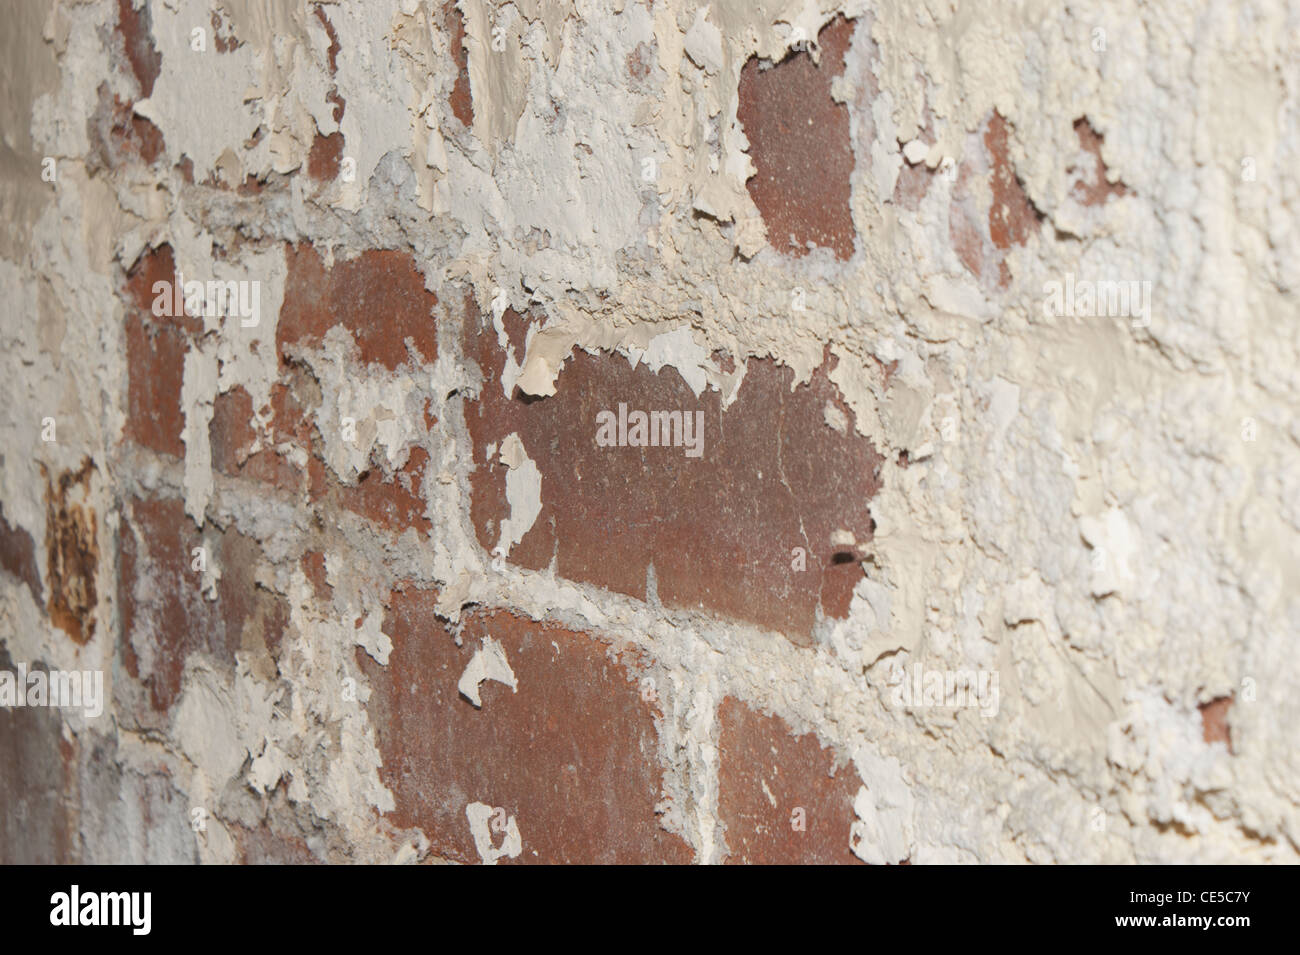 Damp wall paint flacking off Stock Photo